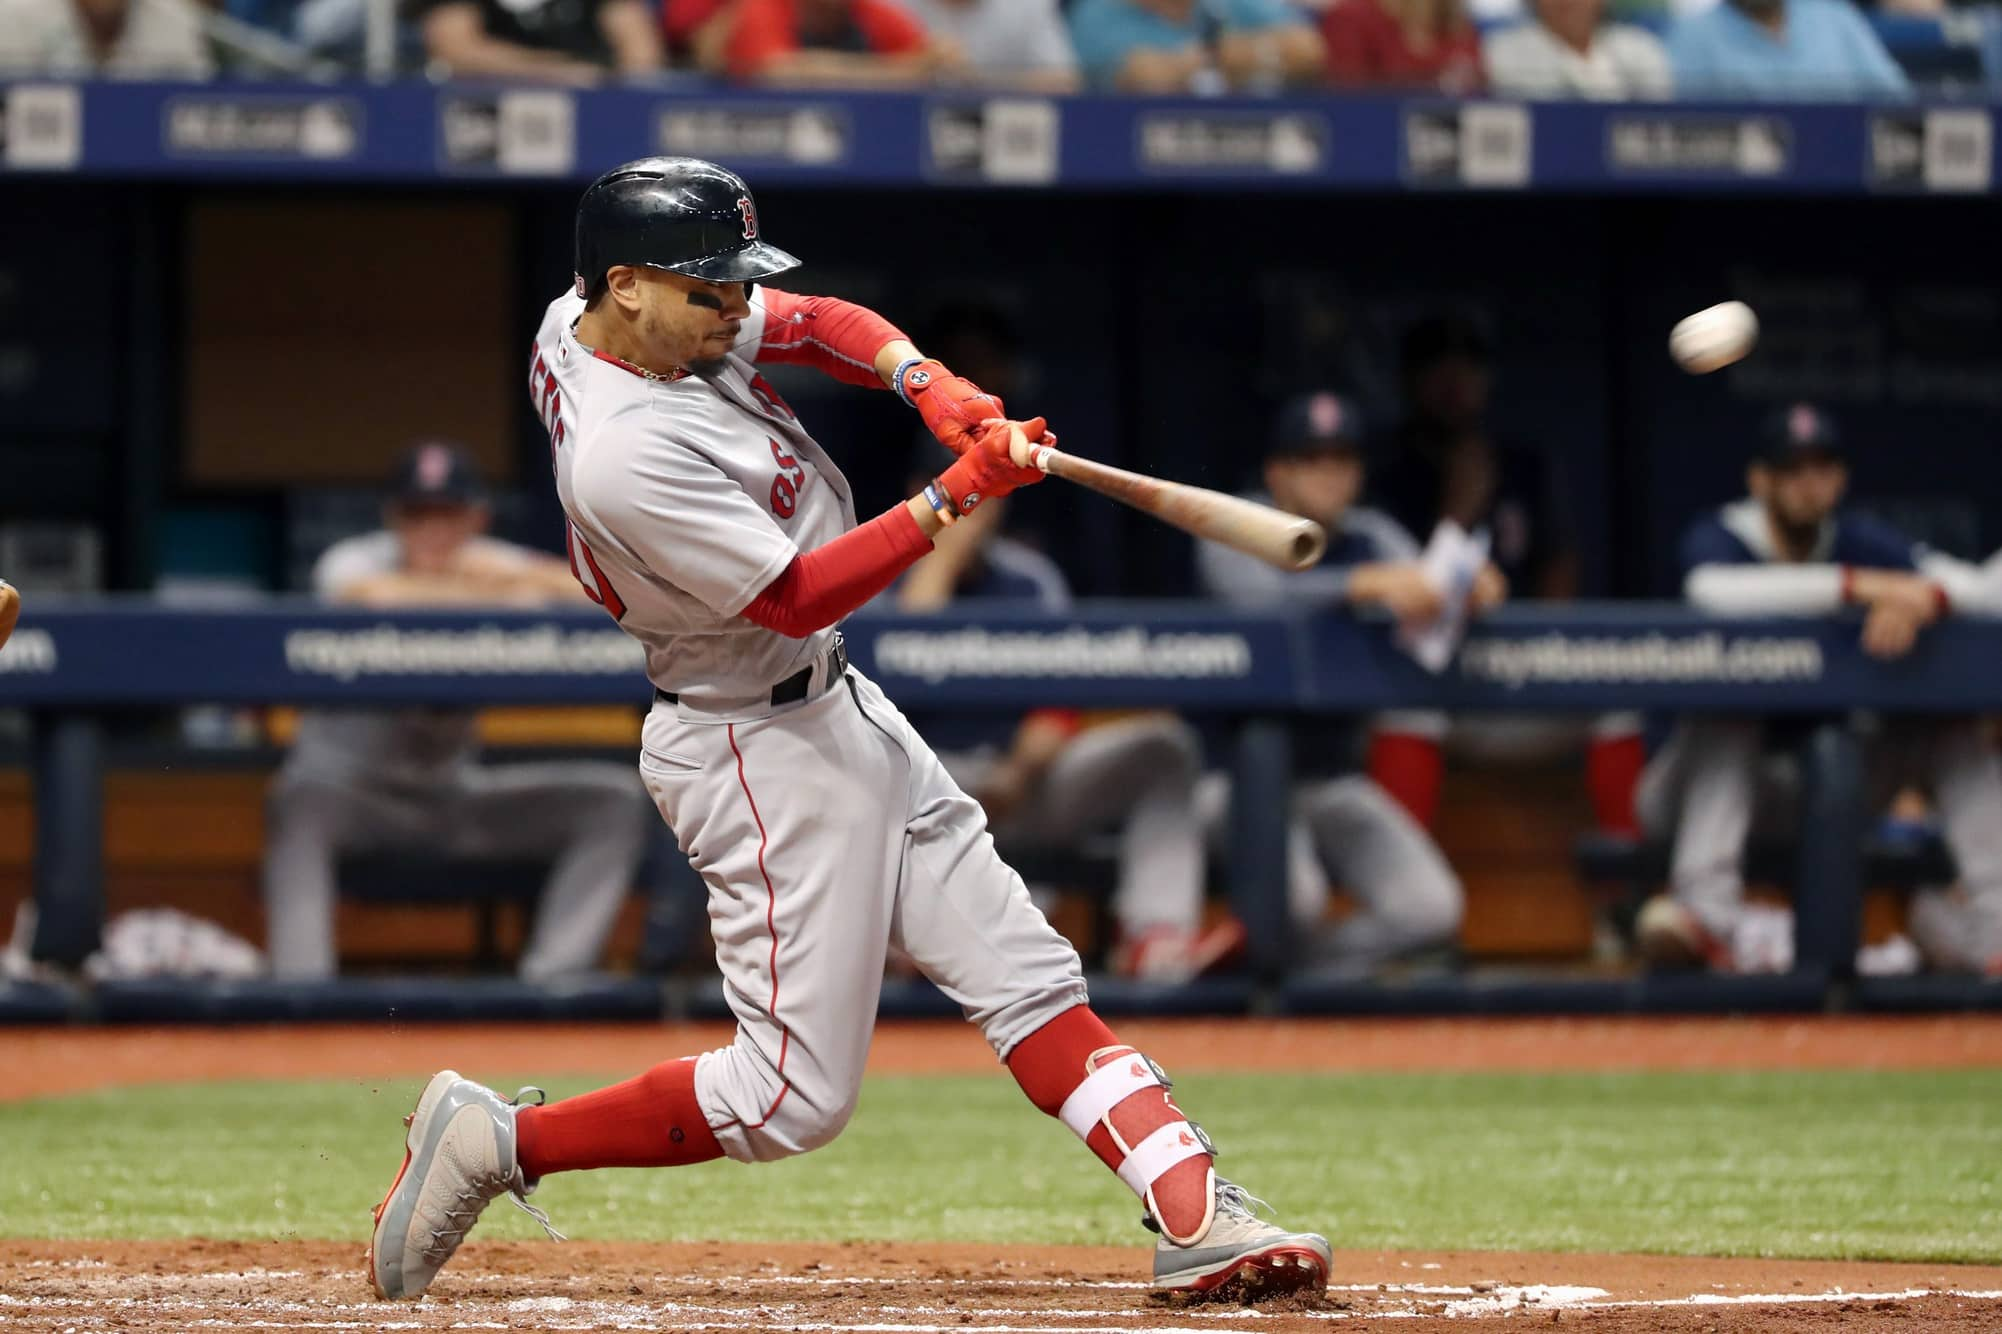 Mookie Betts is one of the MLB hitters pitchers don't want to face